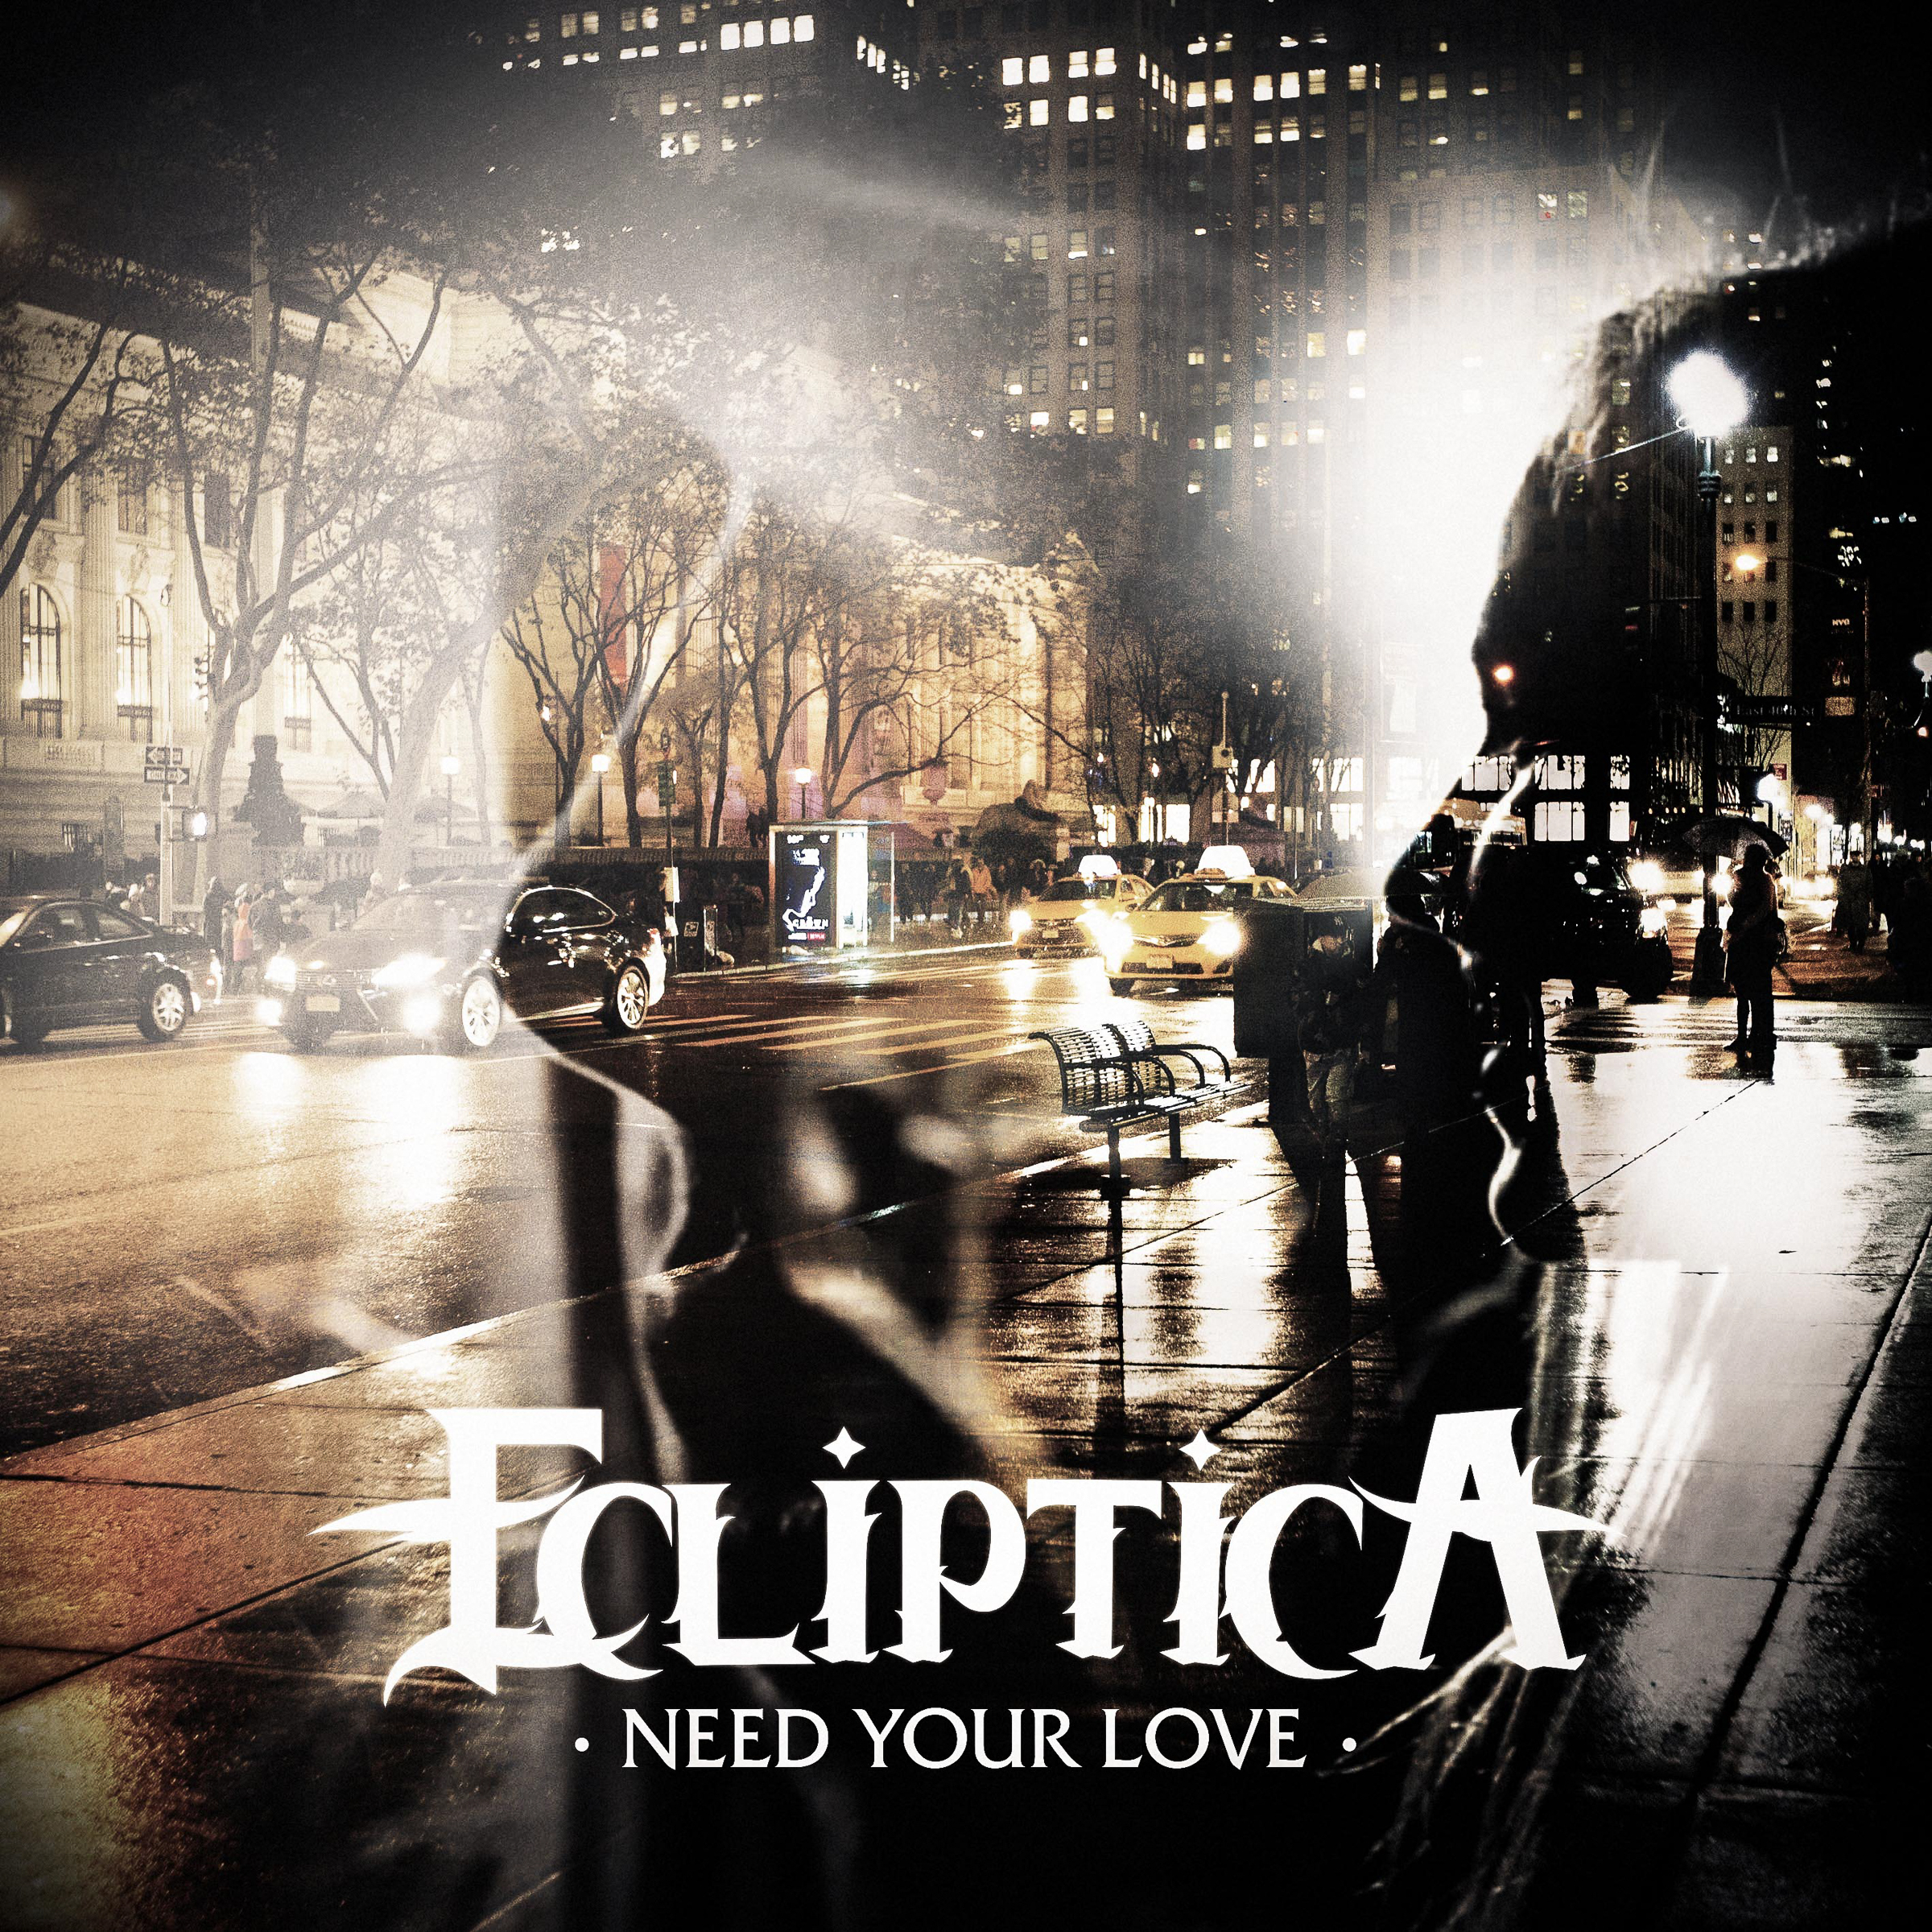 ECLIPTICA - Need Your Love // EP, 2017/04/07 // MMP013 // EAN: 9008798229635